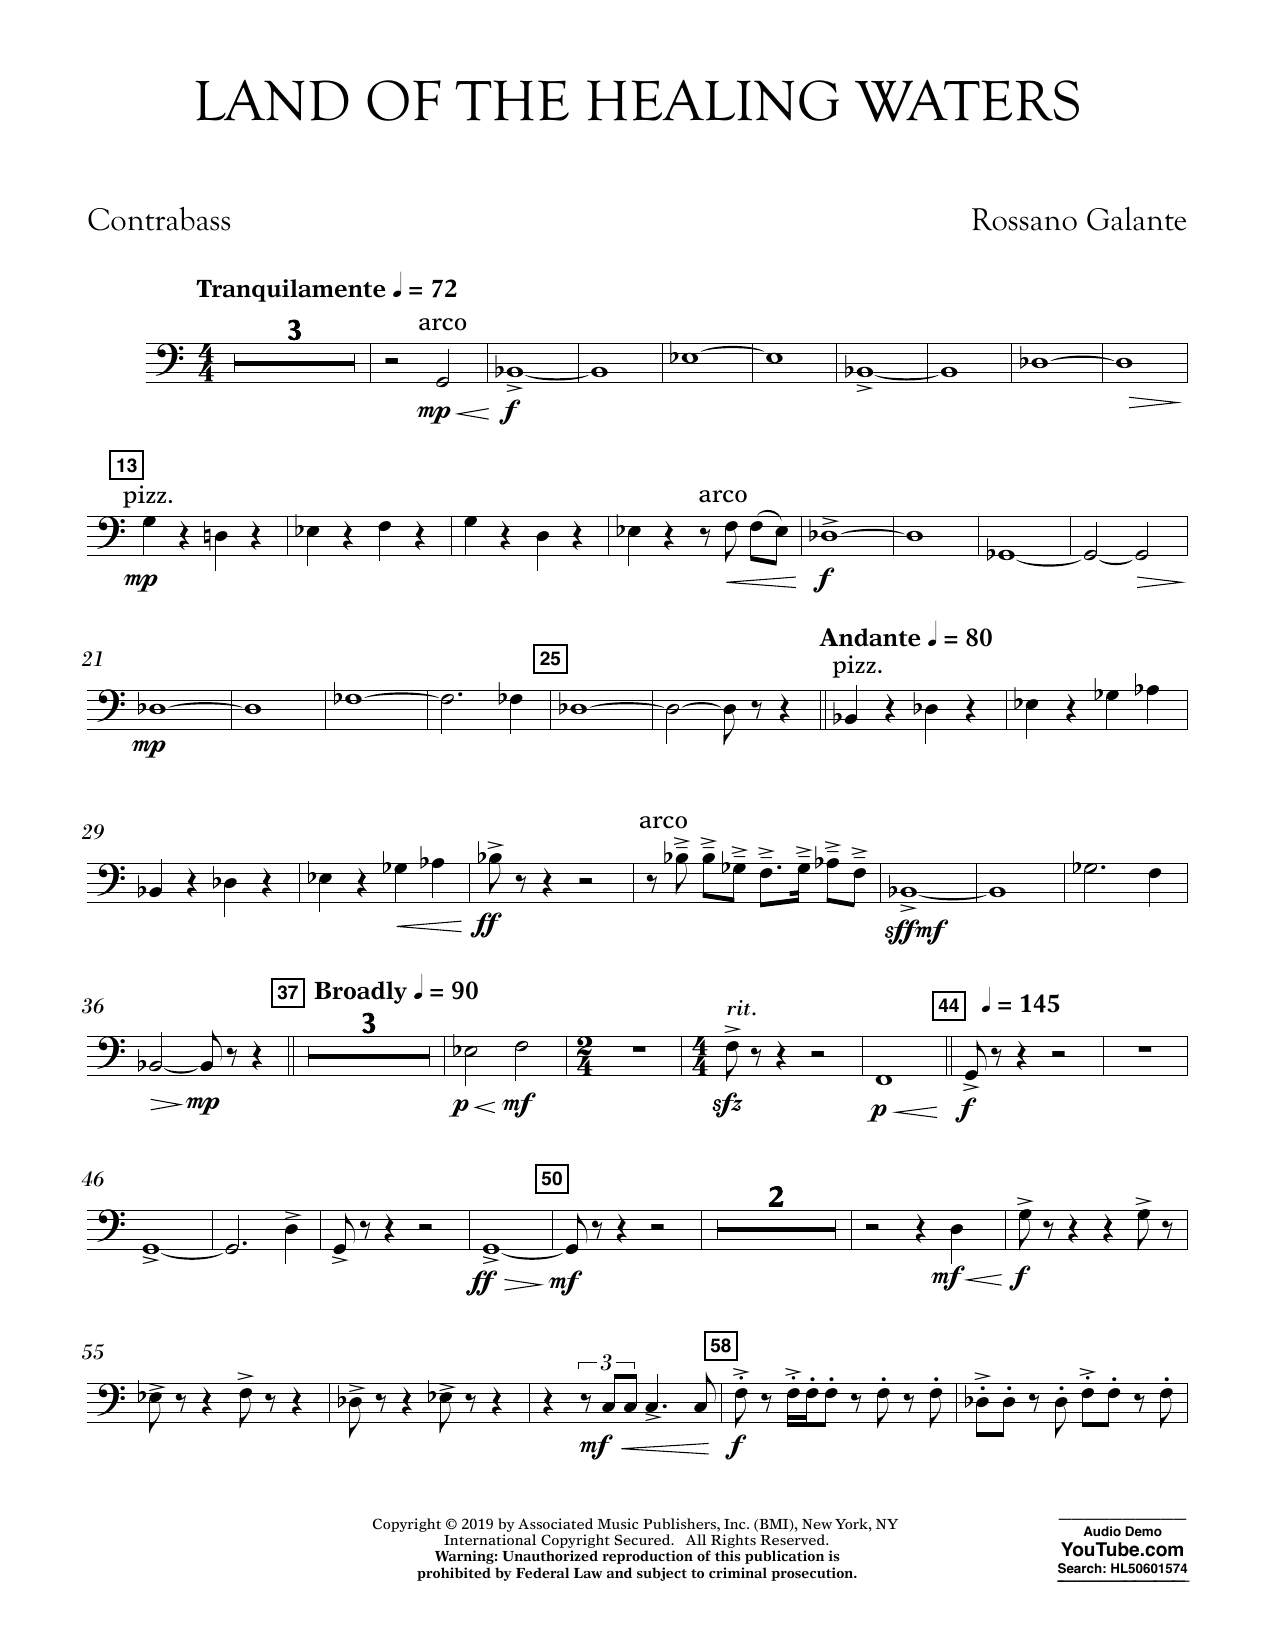 Rossano Galante Land of the Healing Waters - Contrabass sheet music preview music notes and score for Concert Band including 2 page(s)